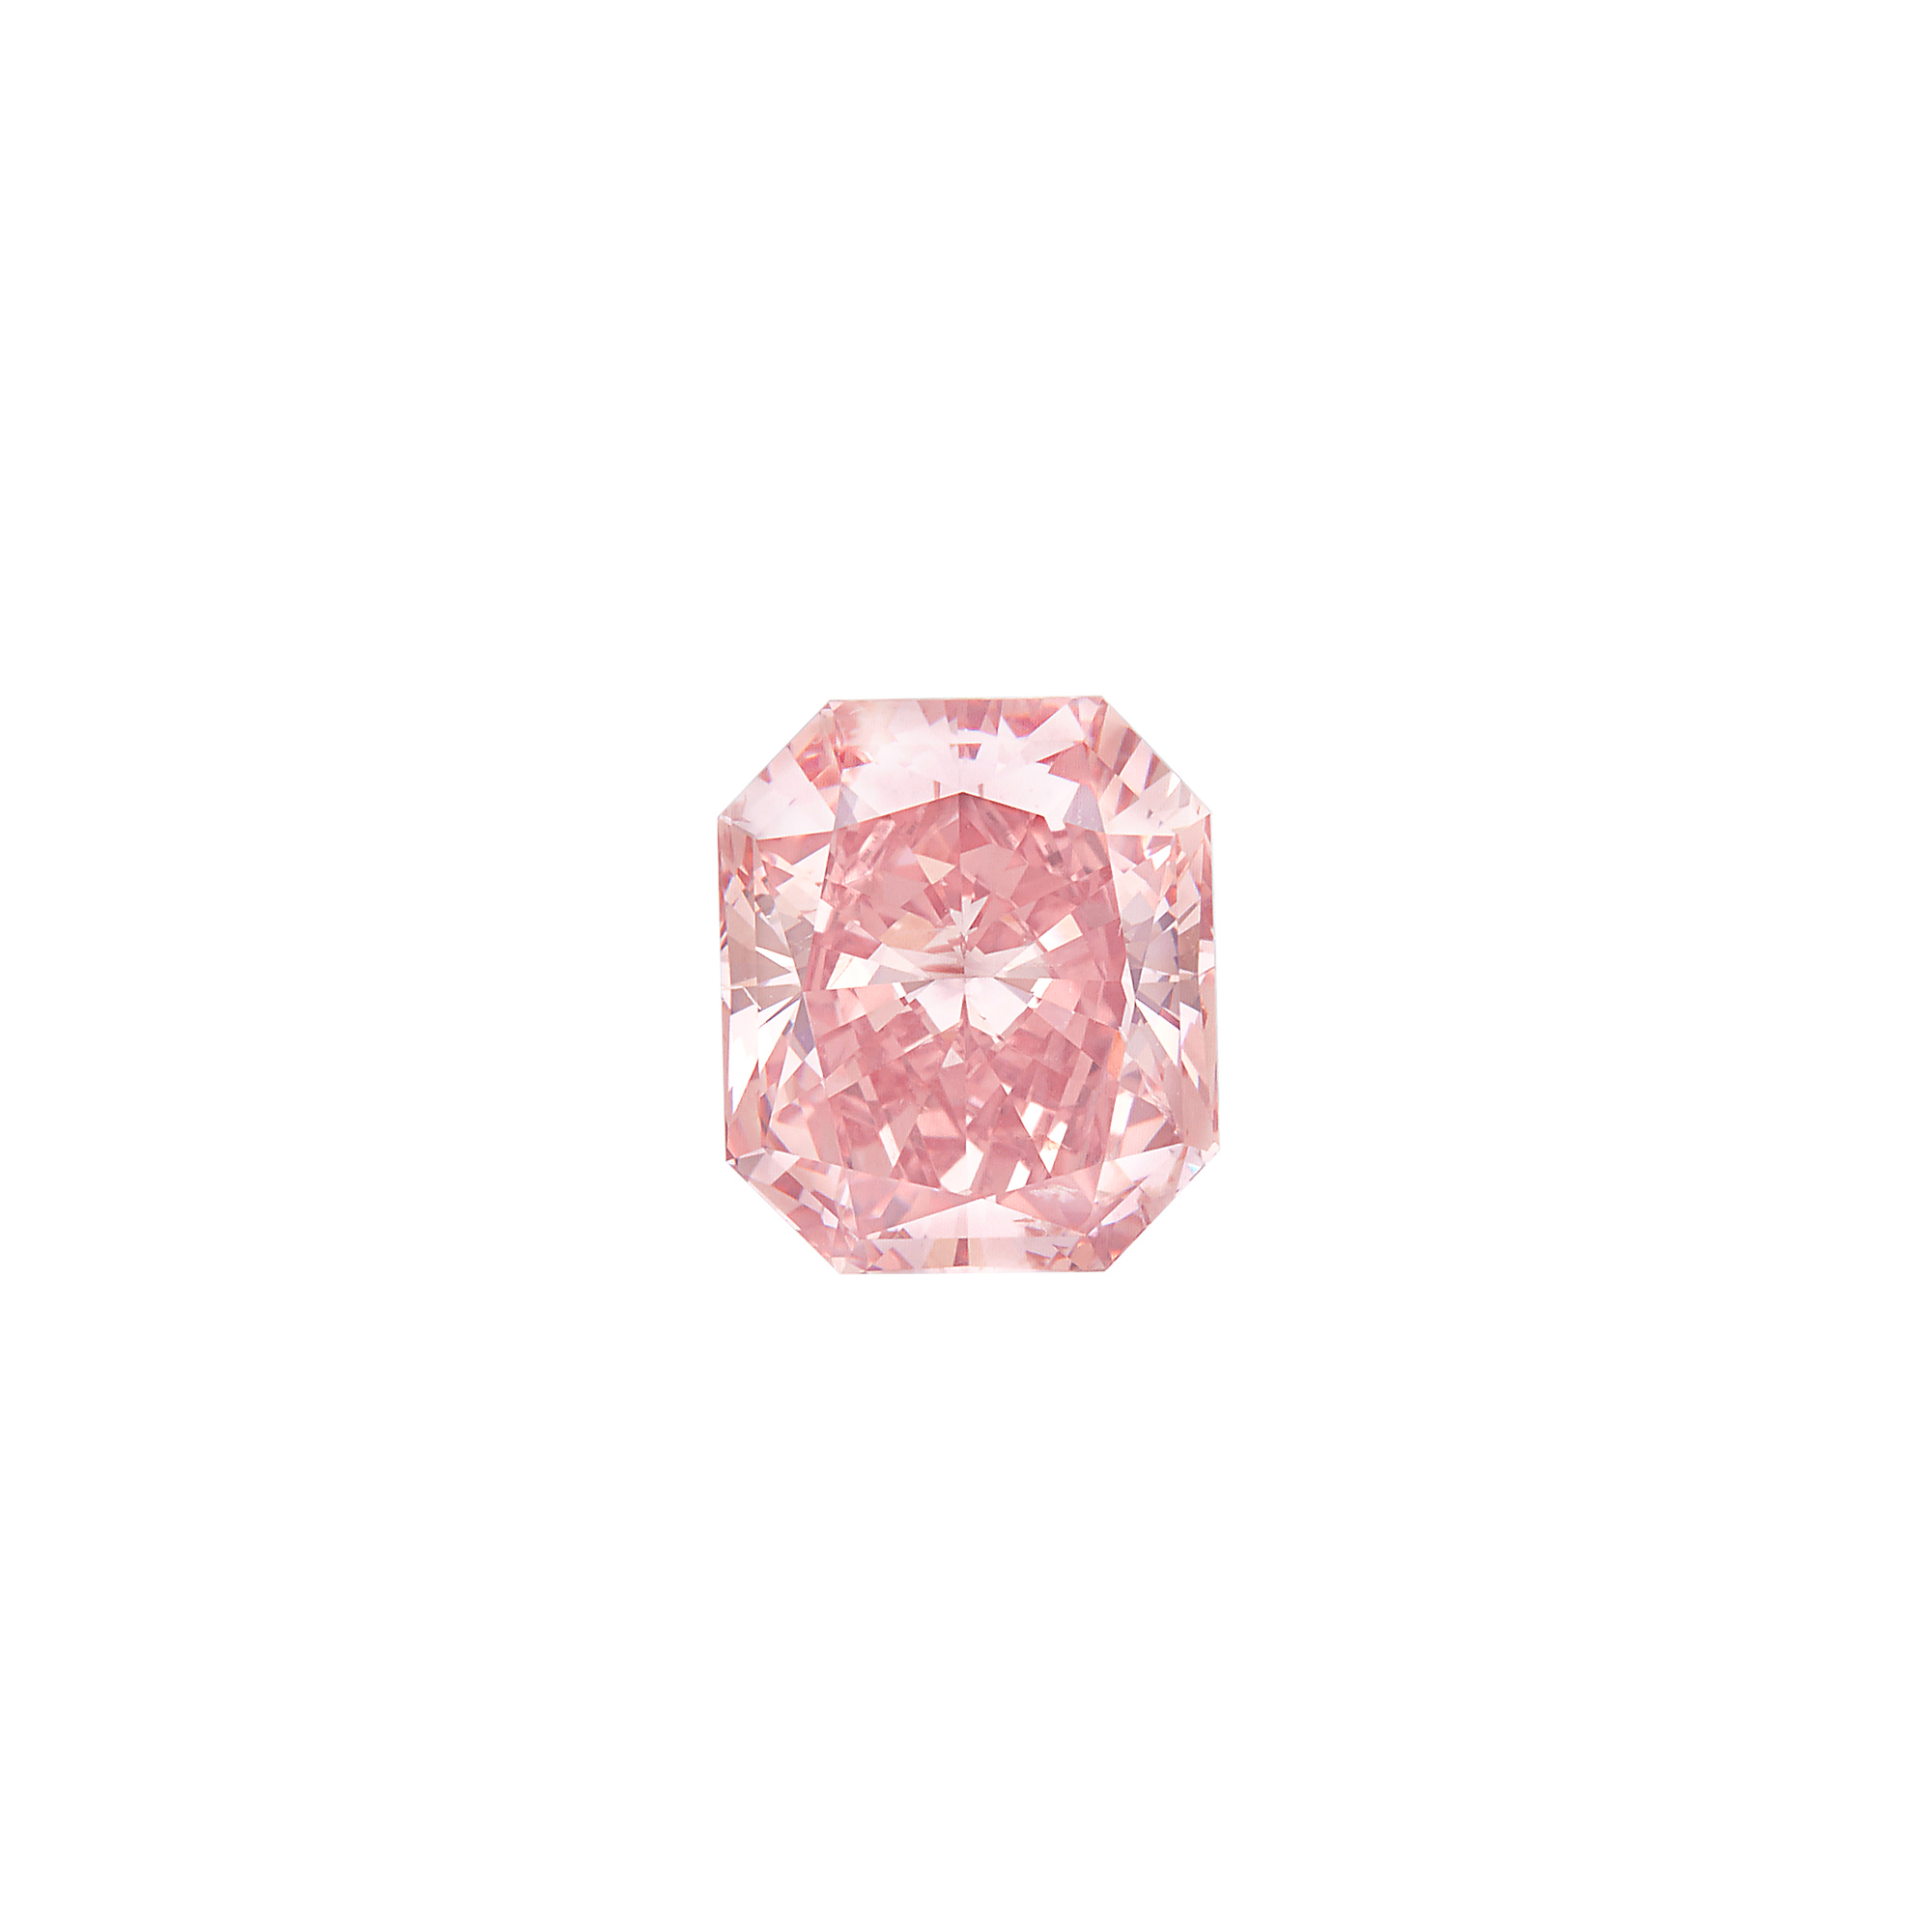 Lot image - Unmounted Fancy Intense Orangy Pink Diamond